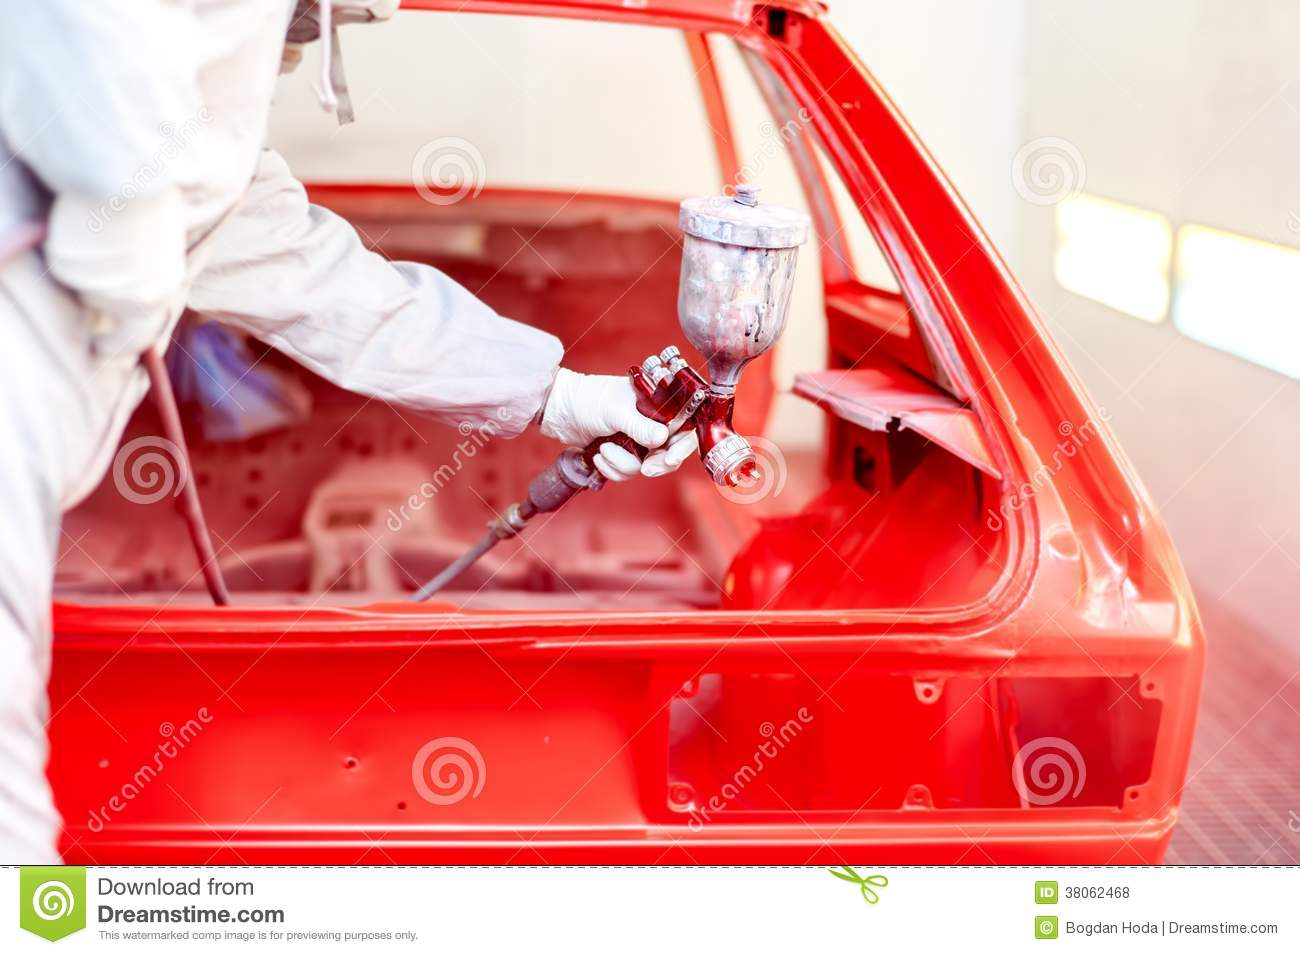 What Paint To Spray Car Bumper